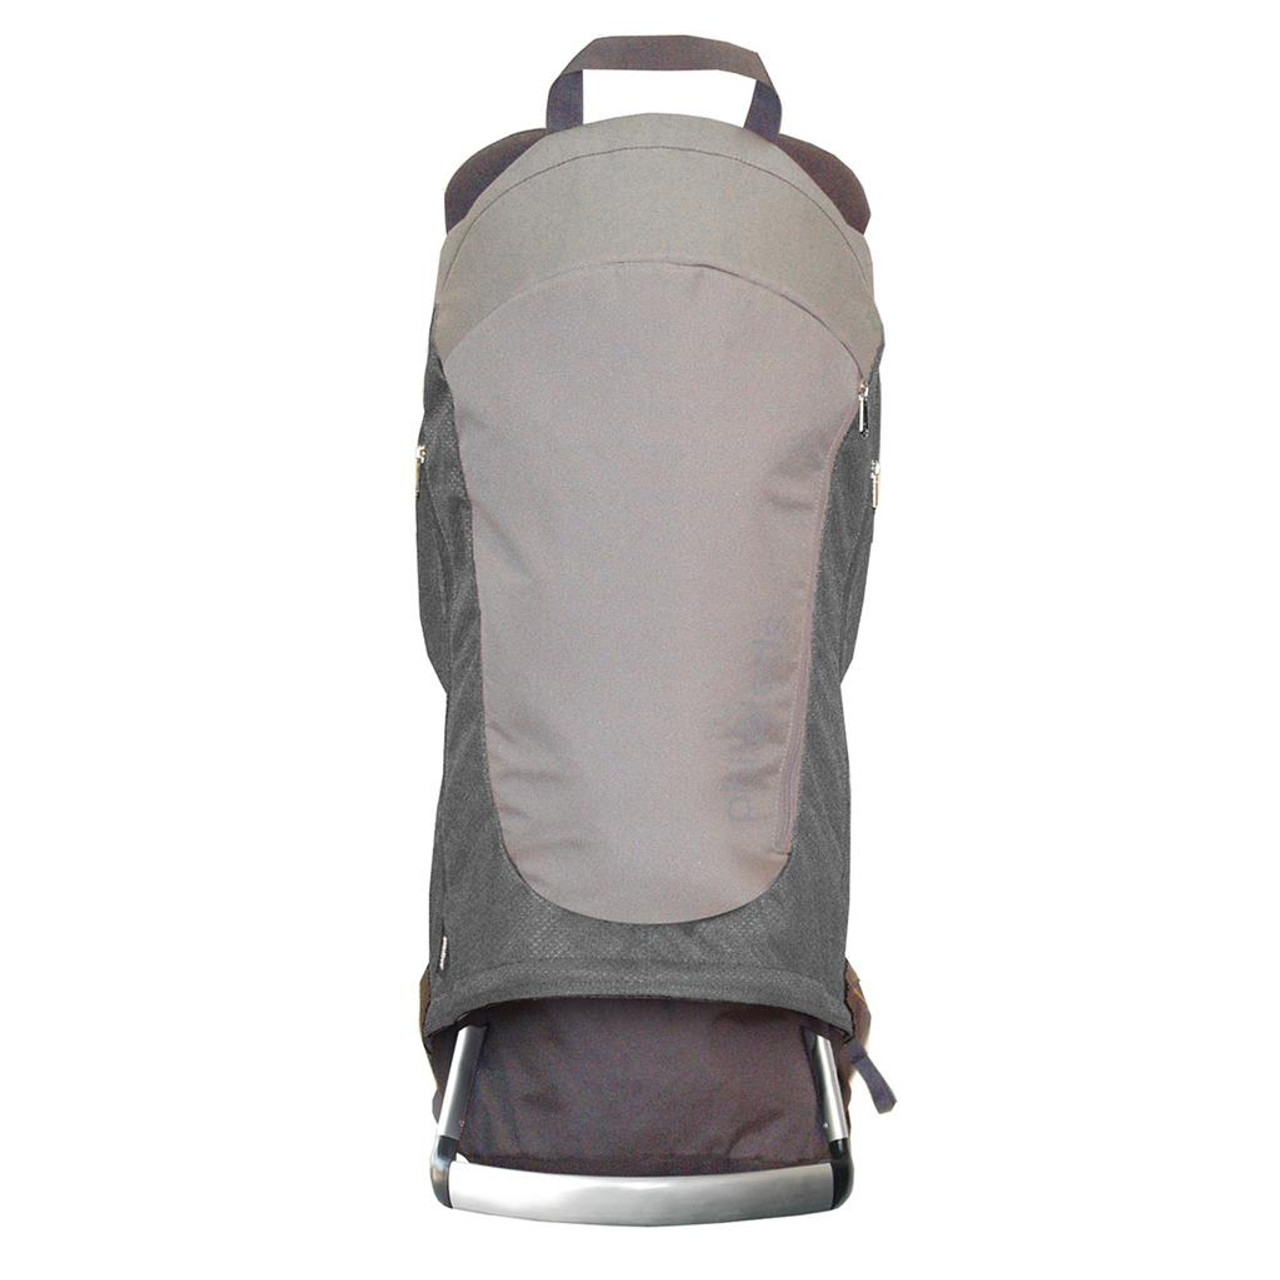 Phil & Teds Escape Child Carrier at Baby Barn Discounts Phil & Teds Escape child carrier enables you to hike with your toddler with ease.